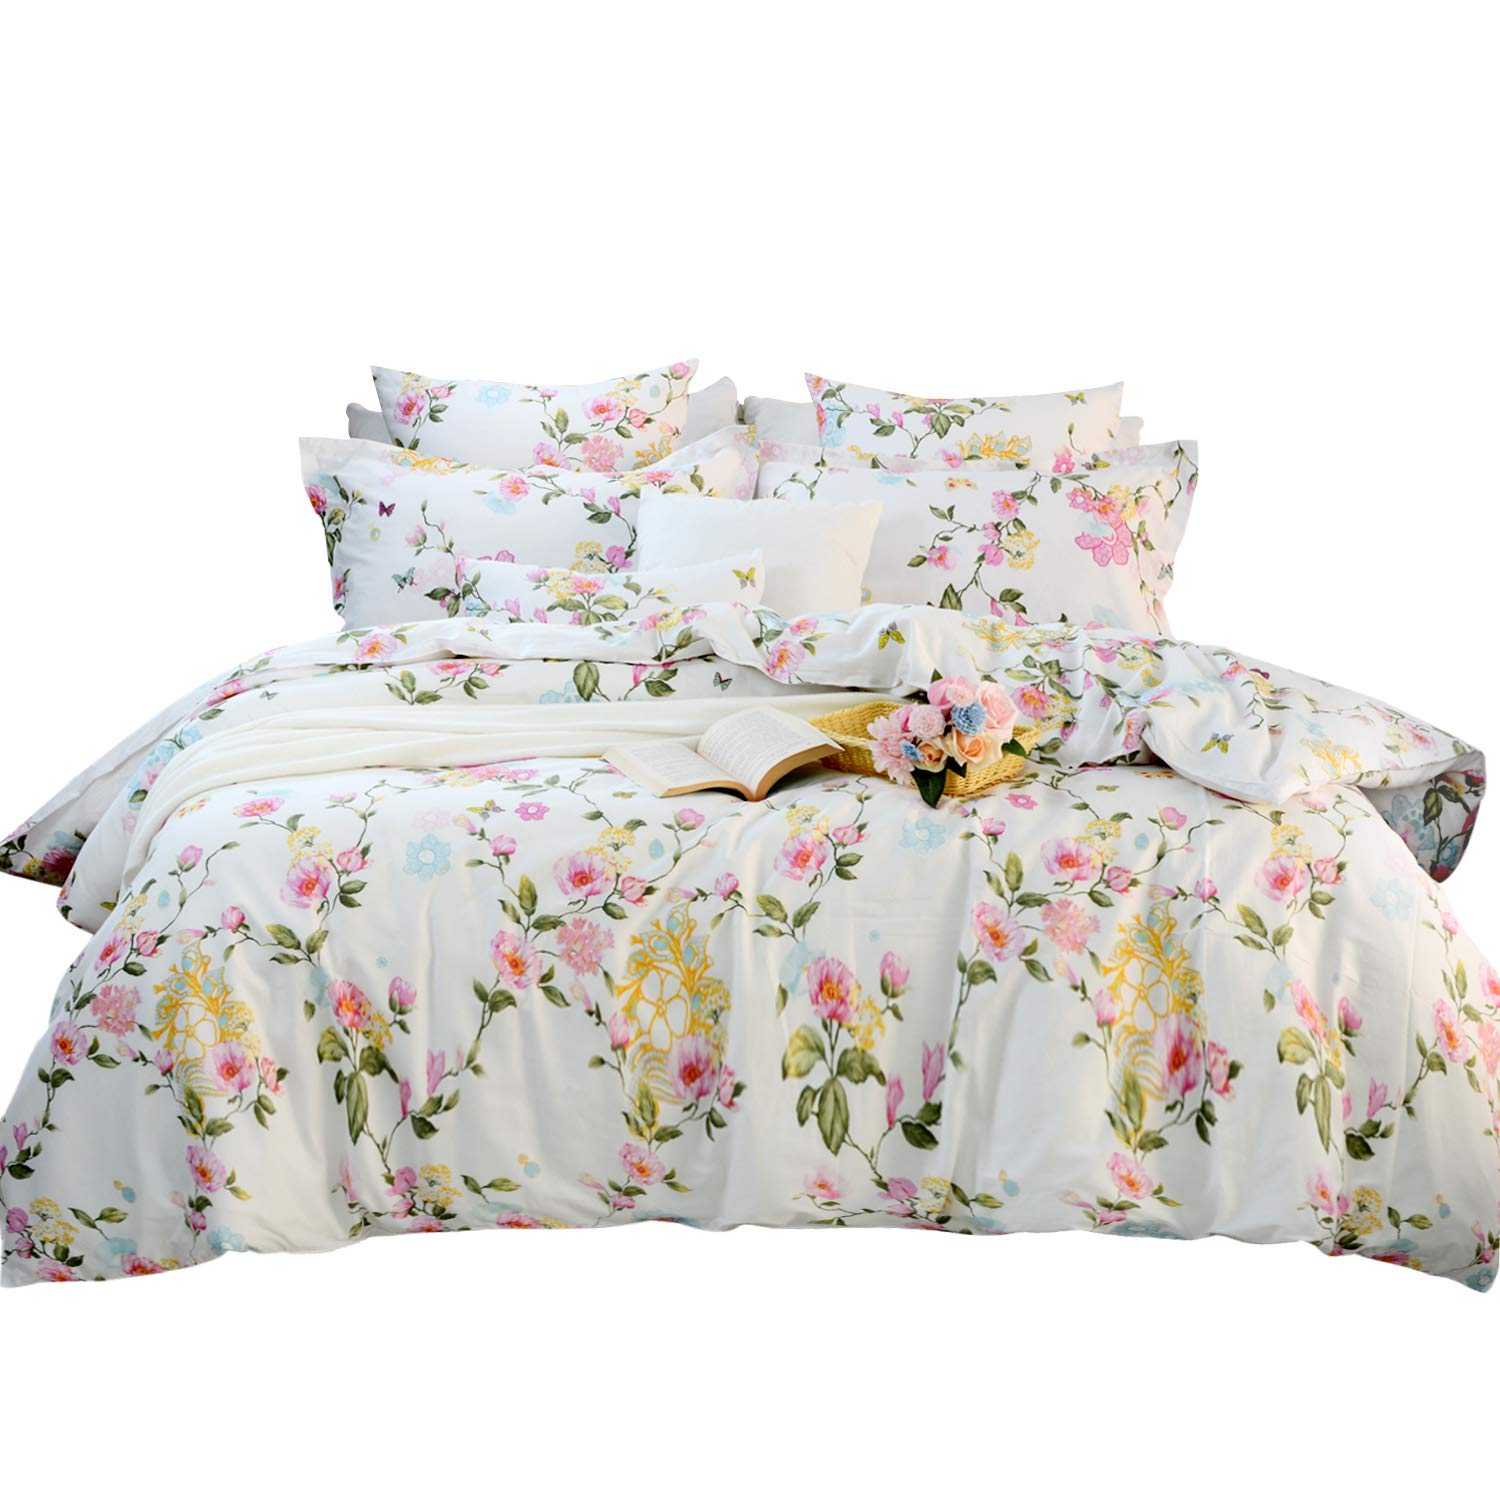 FADFAY Elegant and Shabby Floral Colorful Butterfly 100% Cotton Duvet Cover Set Hypoallergenic with Hidden Zipper Closure, Twin XL Size for Dorm Room 3-Pieces